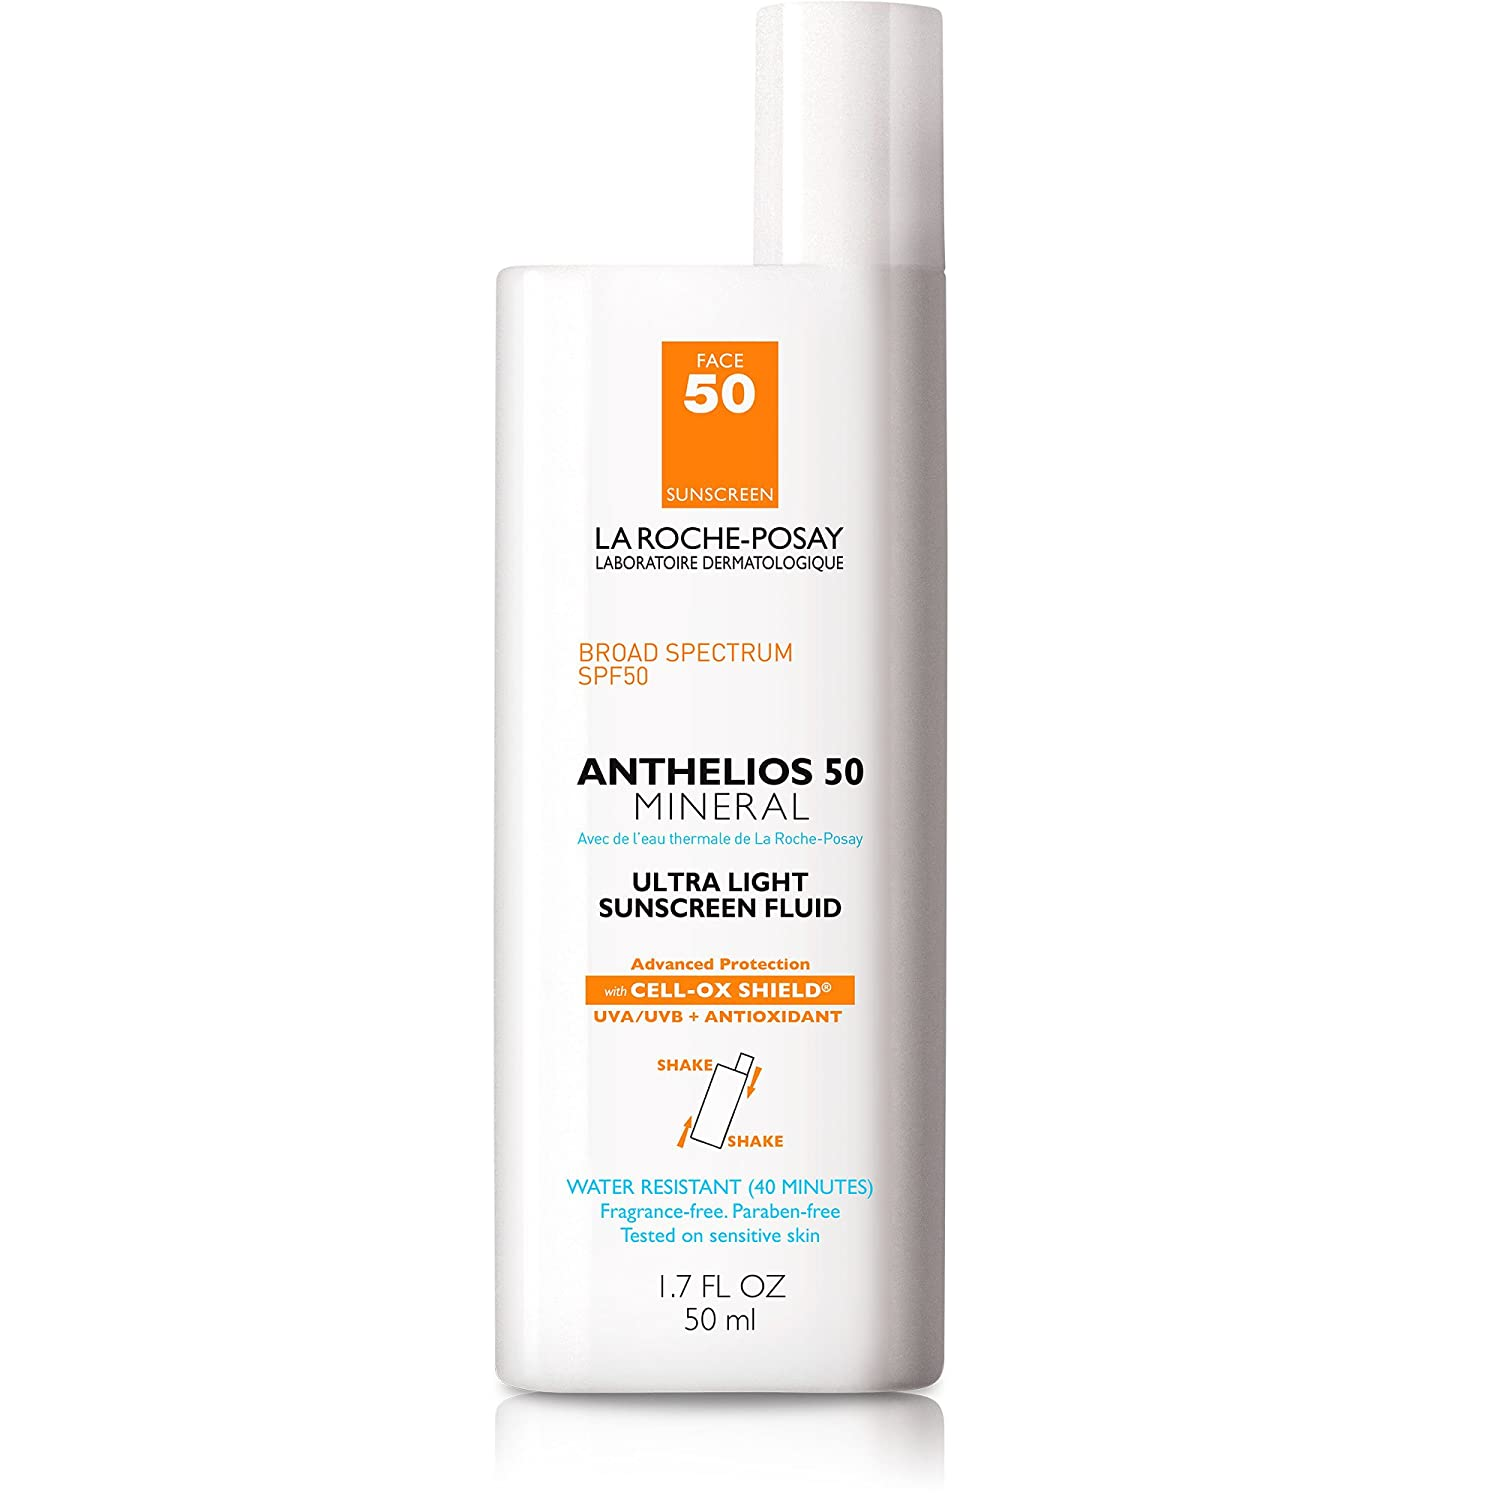 La Roche-Posay Anthelios Mineral Ultra-Light Fluid Broad Spectrum SPF 50, Face Sunscreen with Zinc Oxide and Titanium Dioxide, Oil-Free , 1.7 Fl. Oz: Premium Beauty